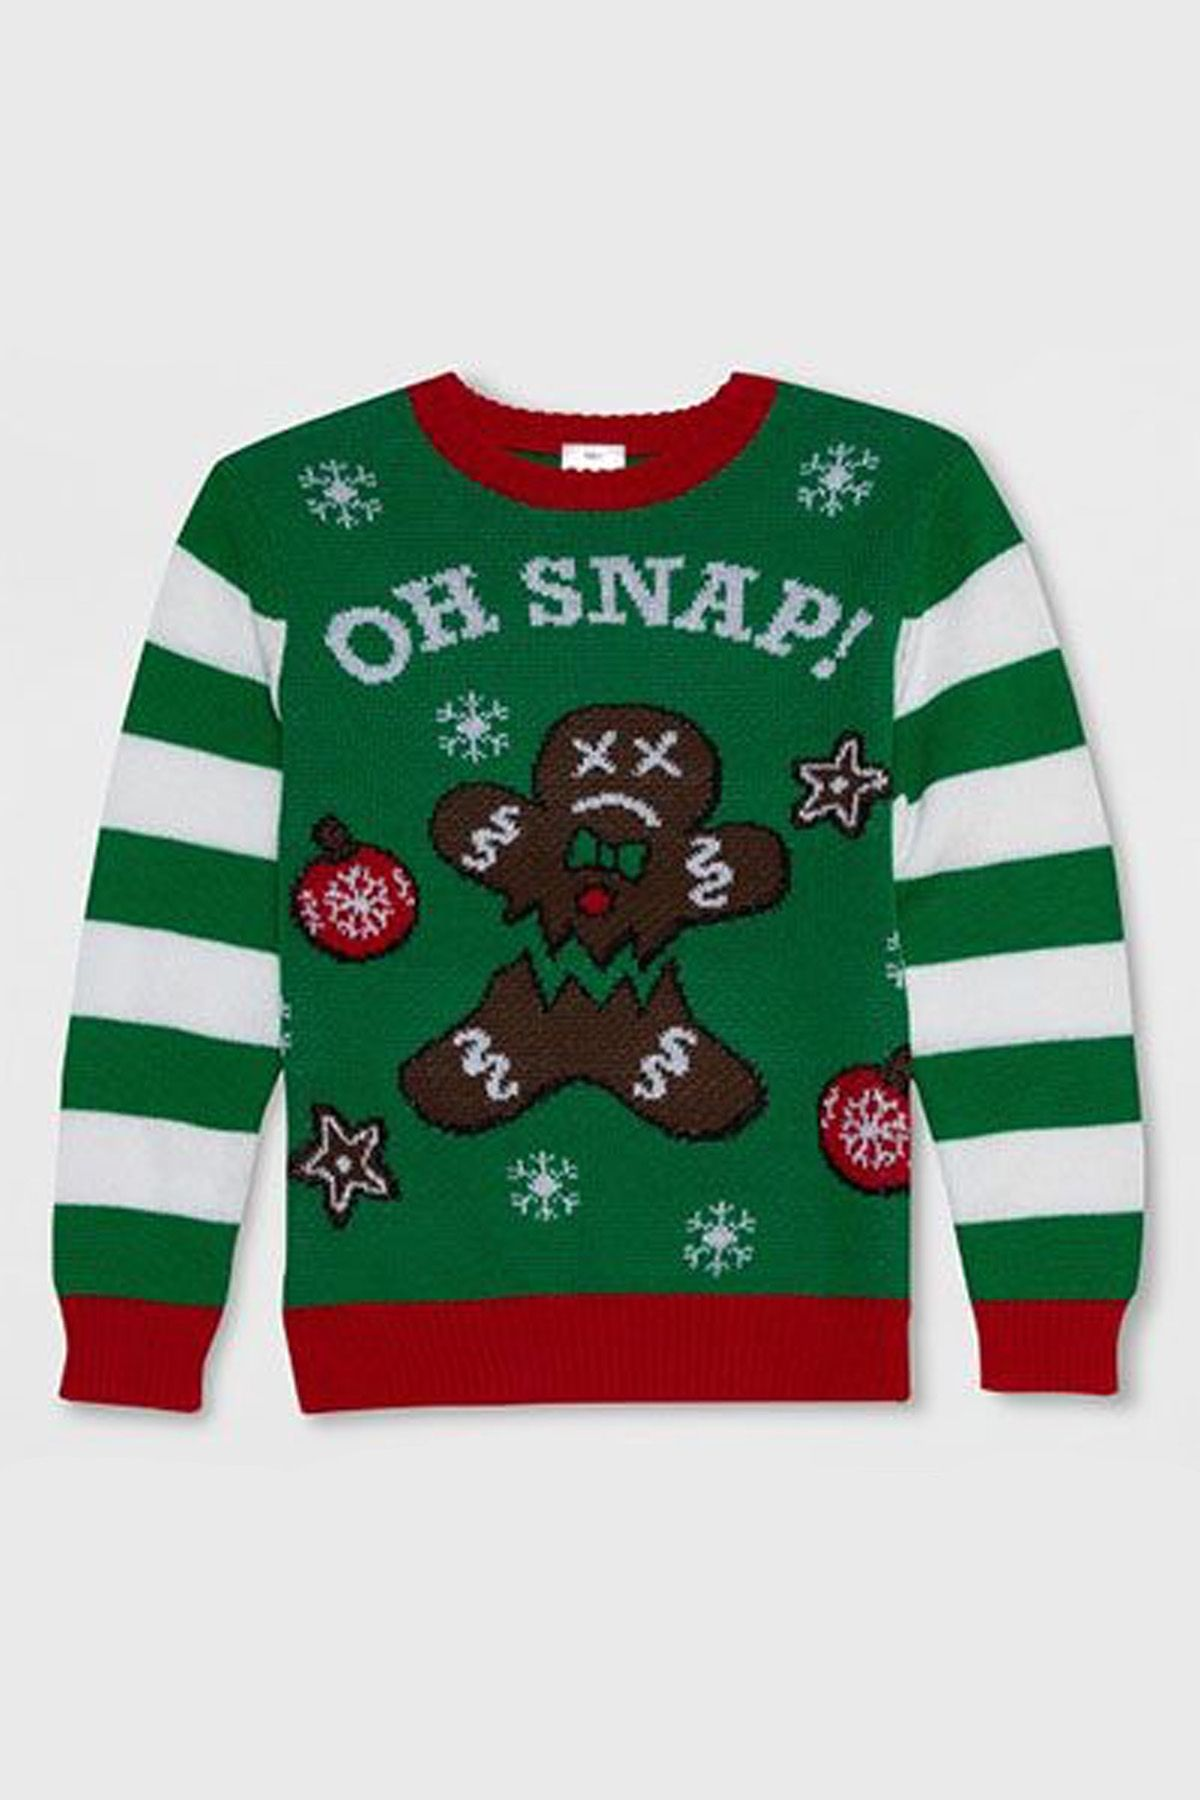 22 Ugly Christmas Sweater Ideas to Buy and DIY , Tacky